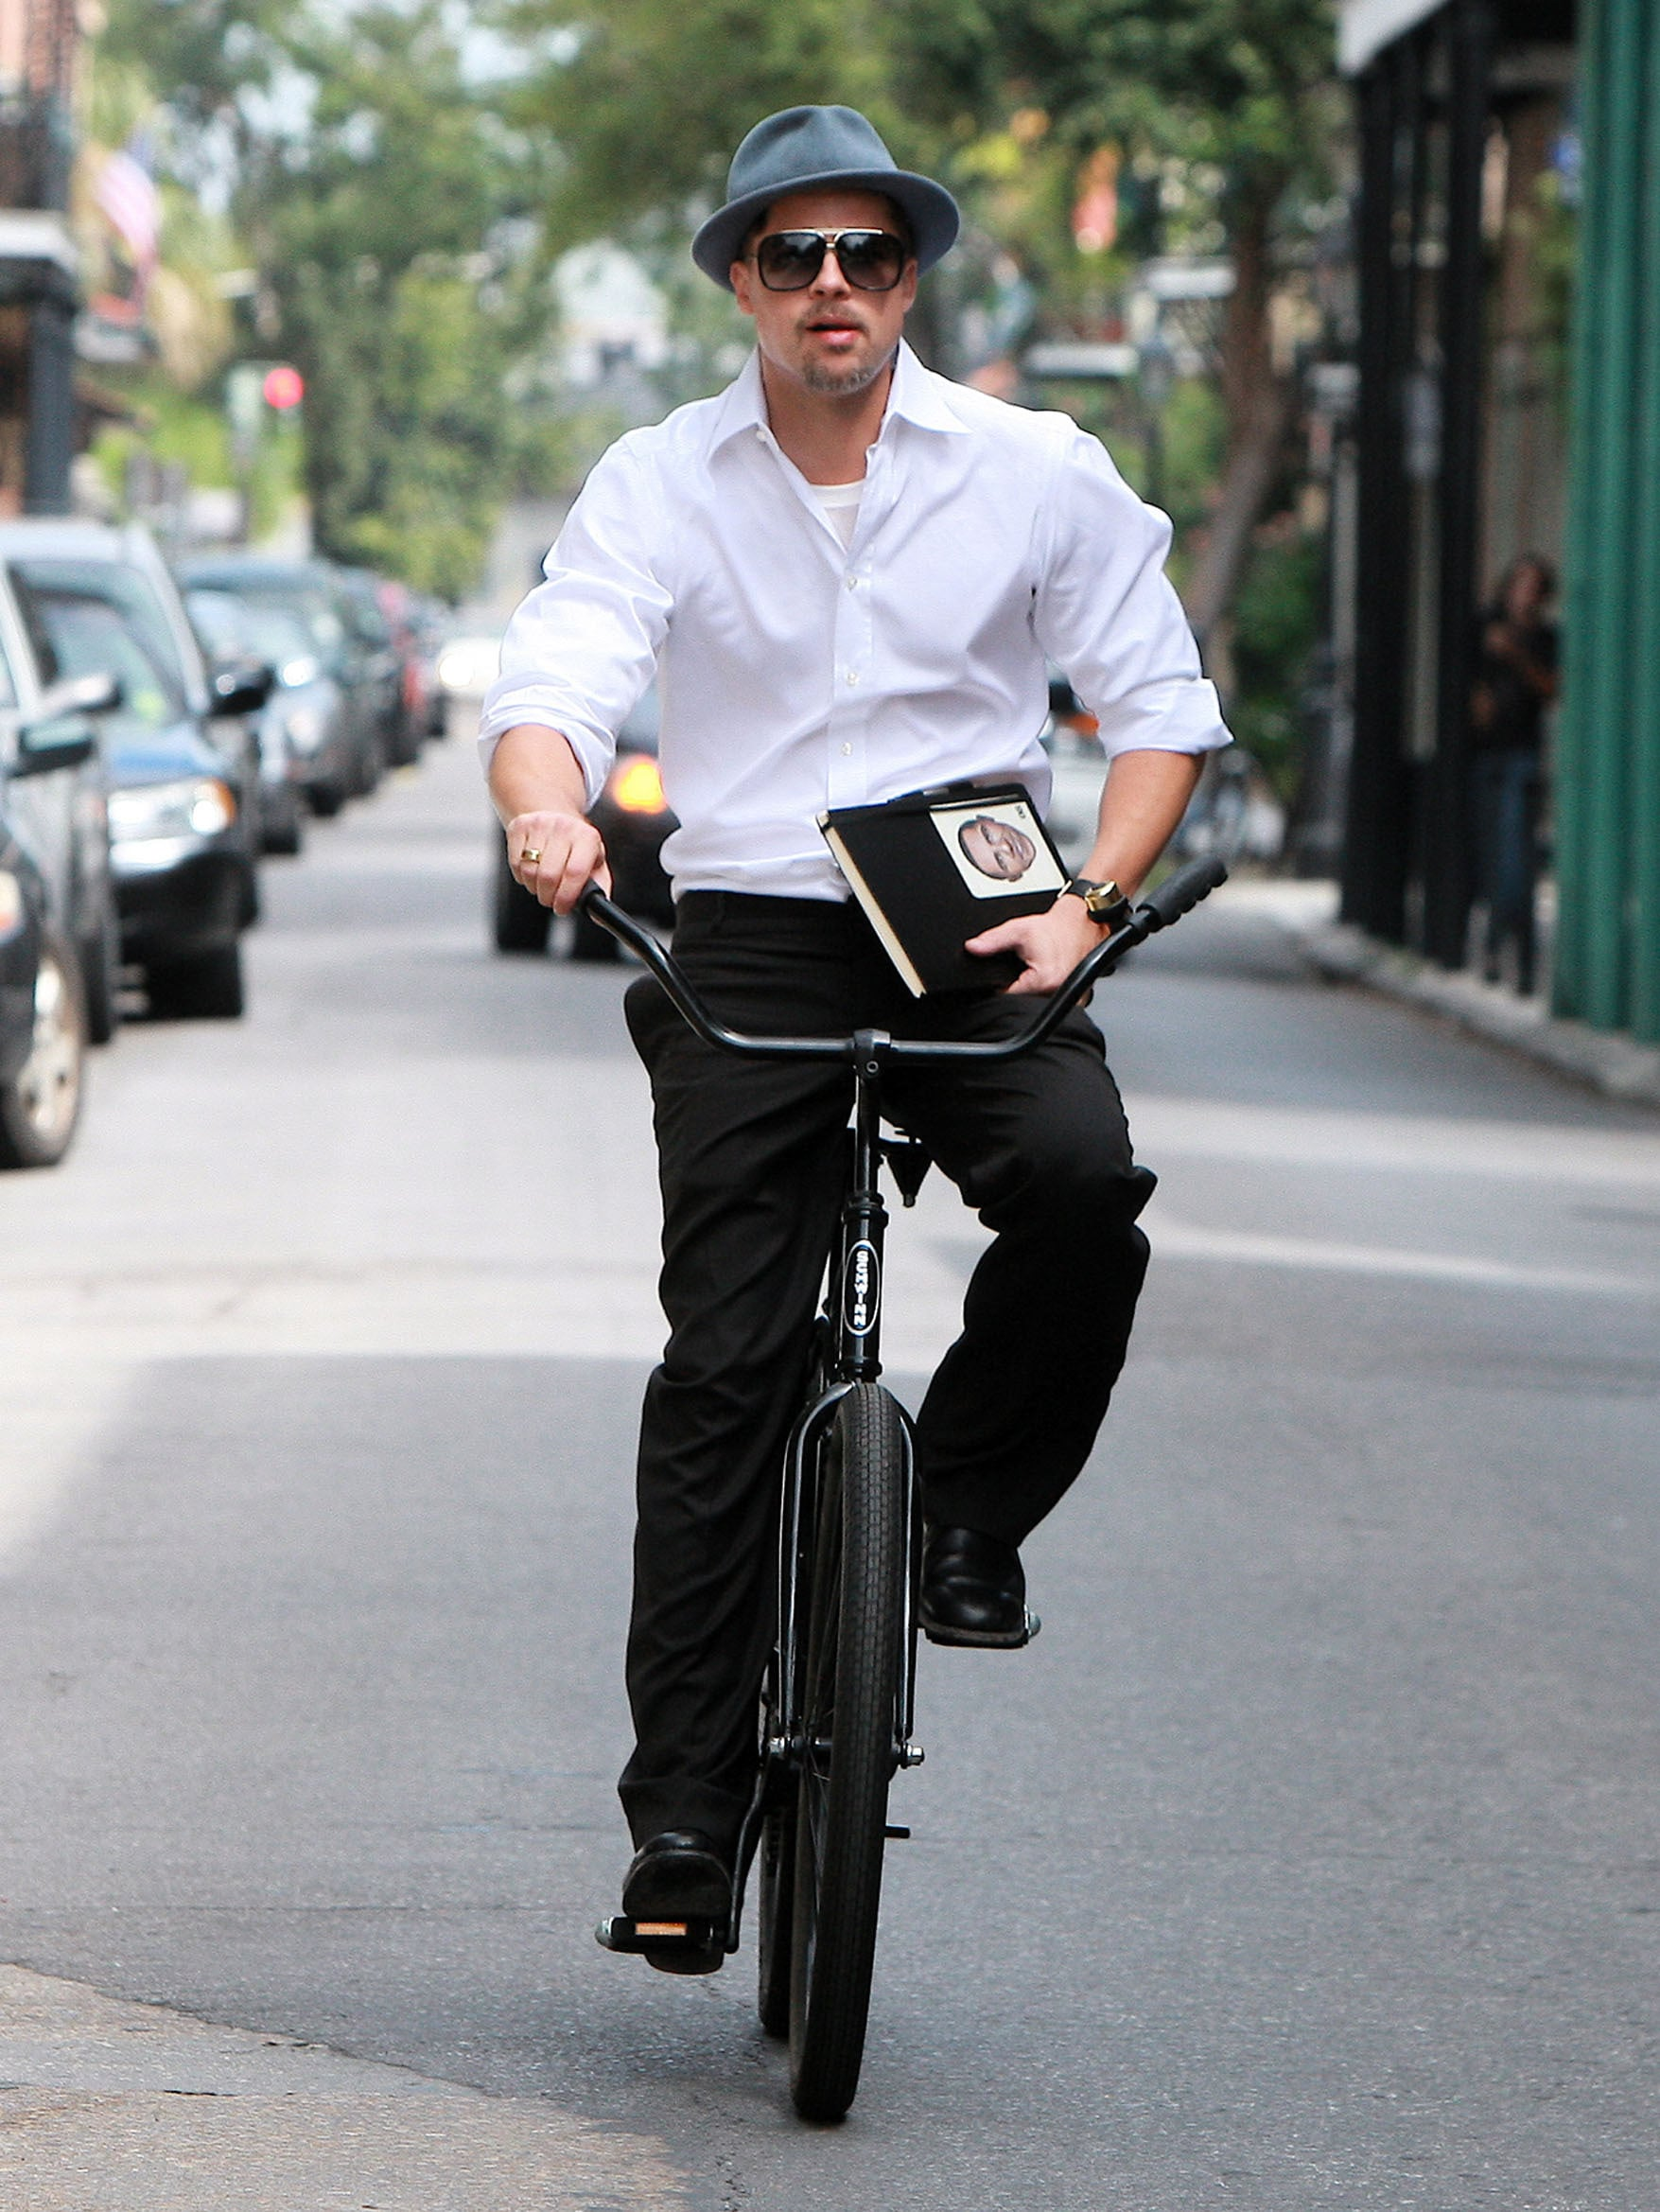 Photos Of Brad Pitt Riding His Bike In New Orleans